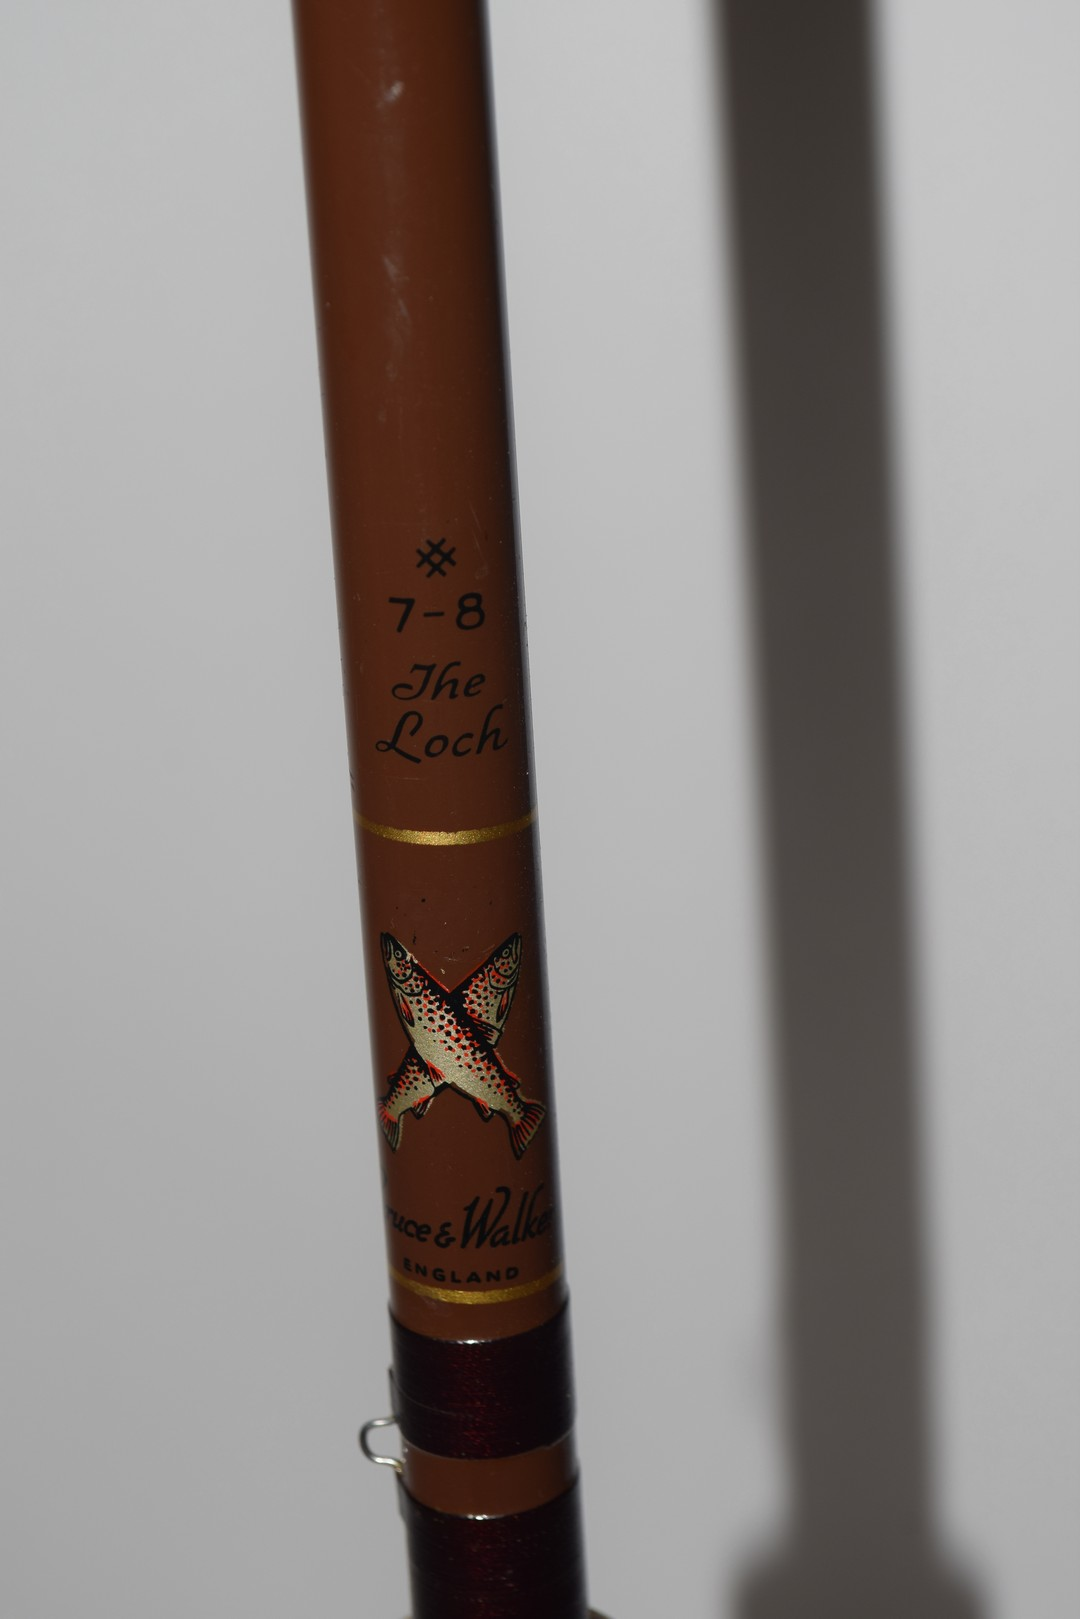 Bruce & Walker, England, vintage fly fishing rod 'The Loch' - Image 2 of 6